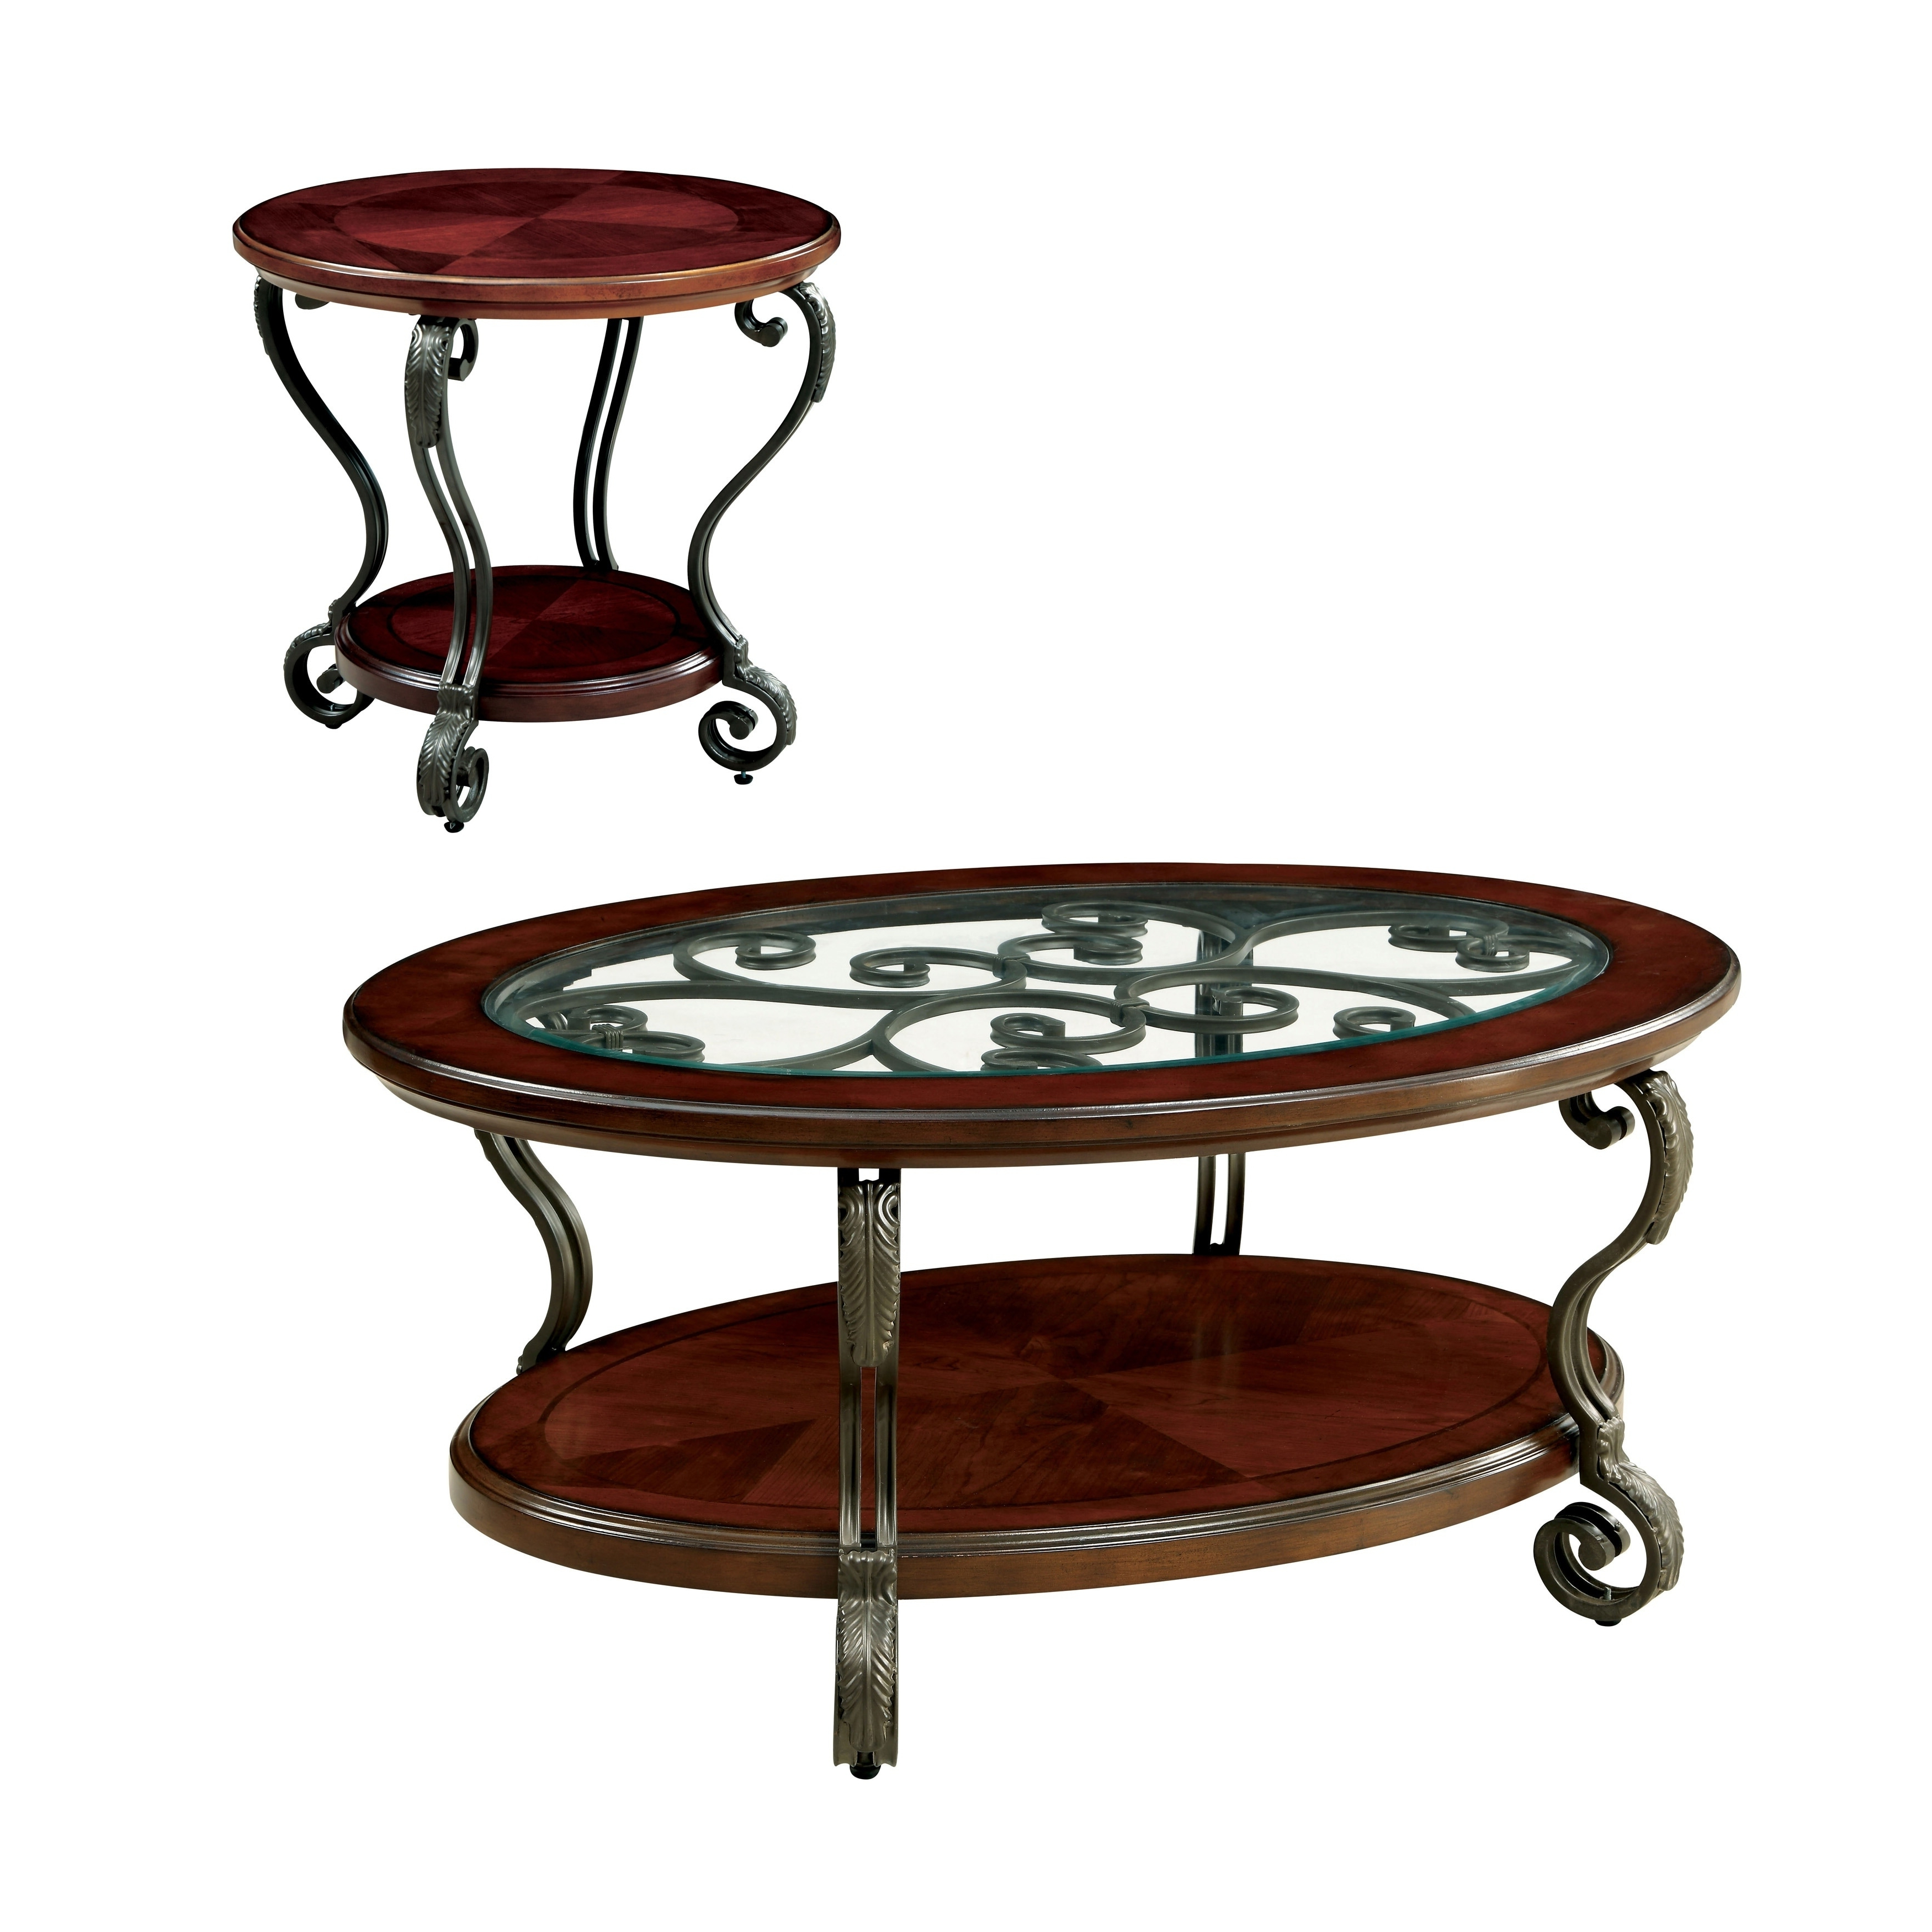 2020 Cohler Traditional Brown Cherry Oval Coffee Tables Throughout Cherry Coffee Table Set – Photos Table And Pillow (View 11 of 20)